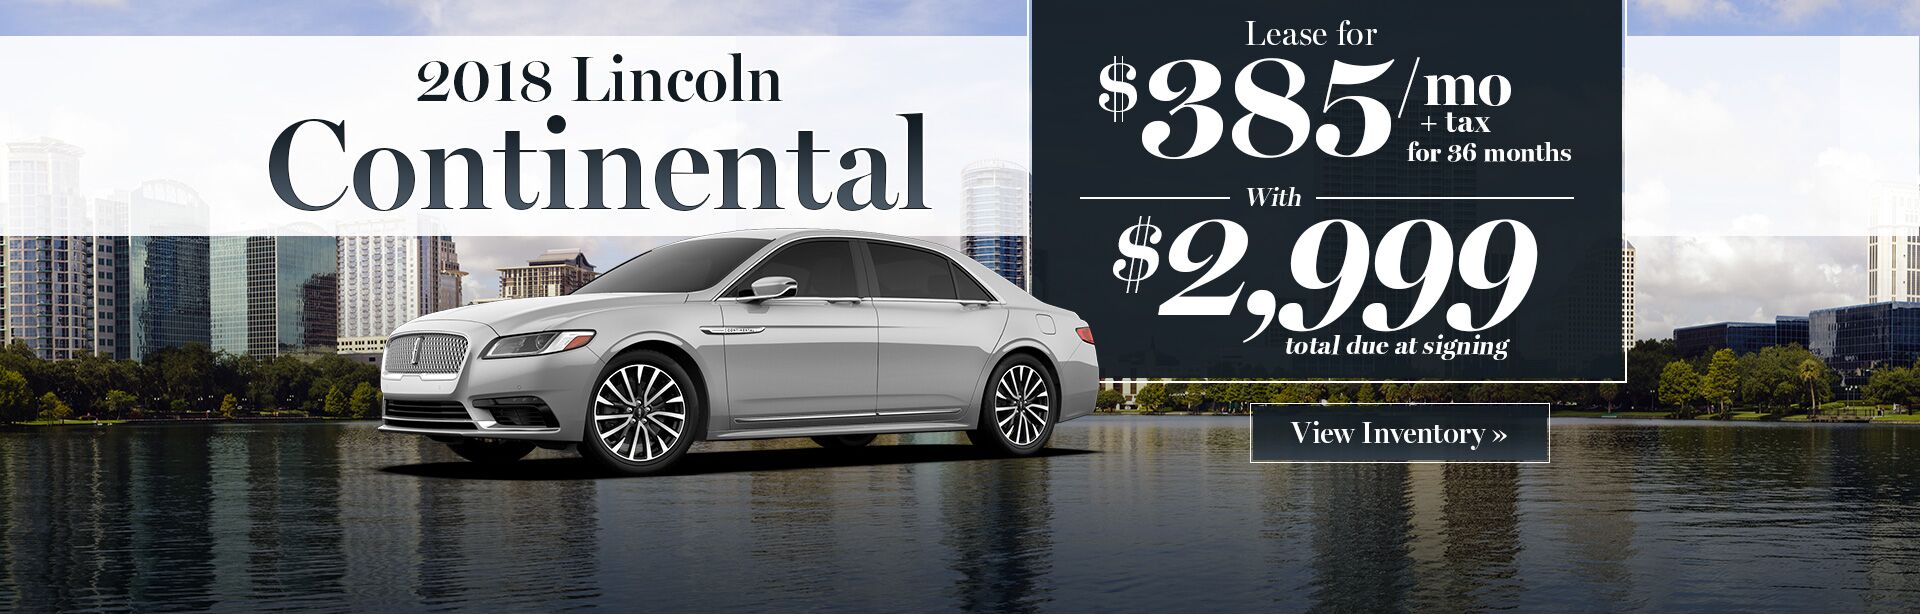 2018 Lincoln Continental lease special